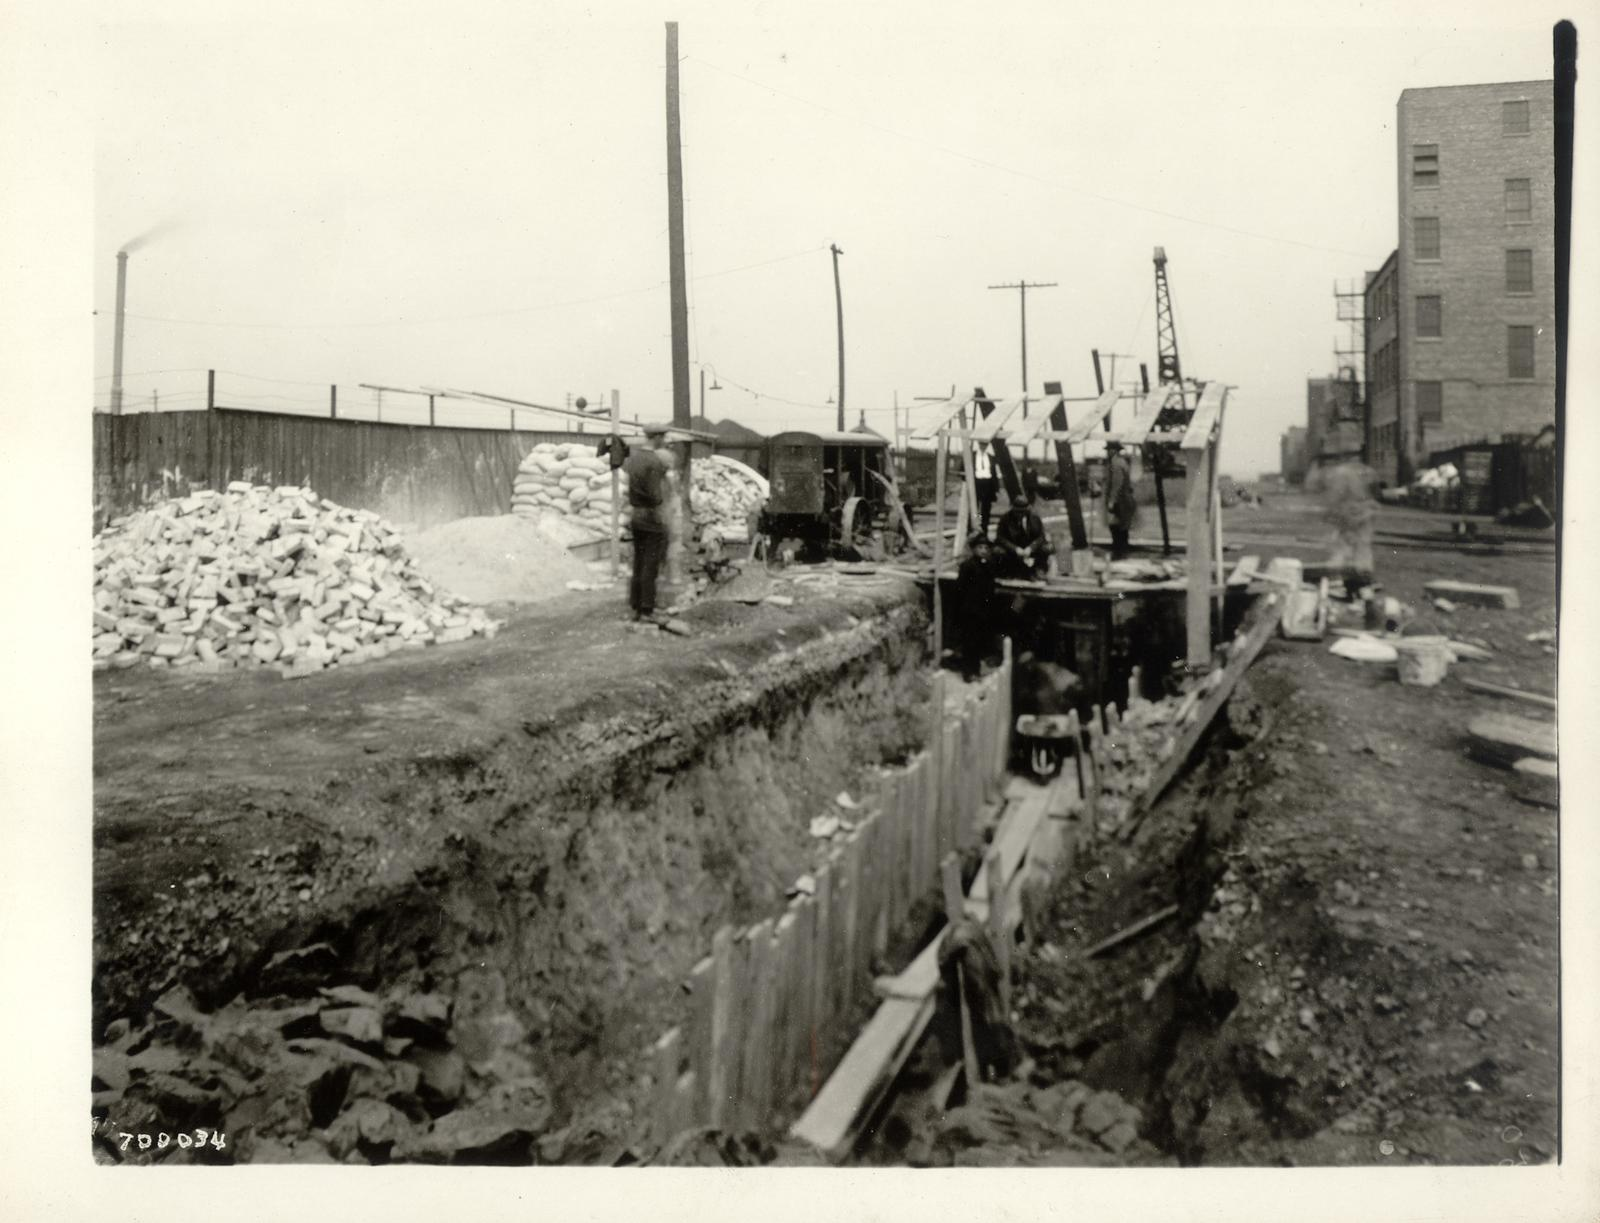 115th Street and Stephenson Avenue [now Champlain Avenue], view of sewer looking east, May 21, 1925